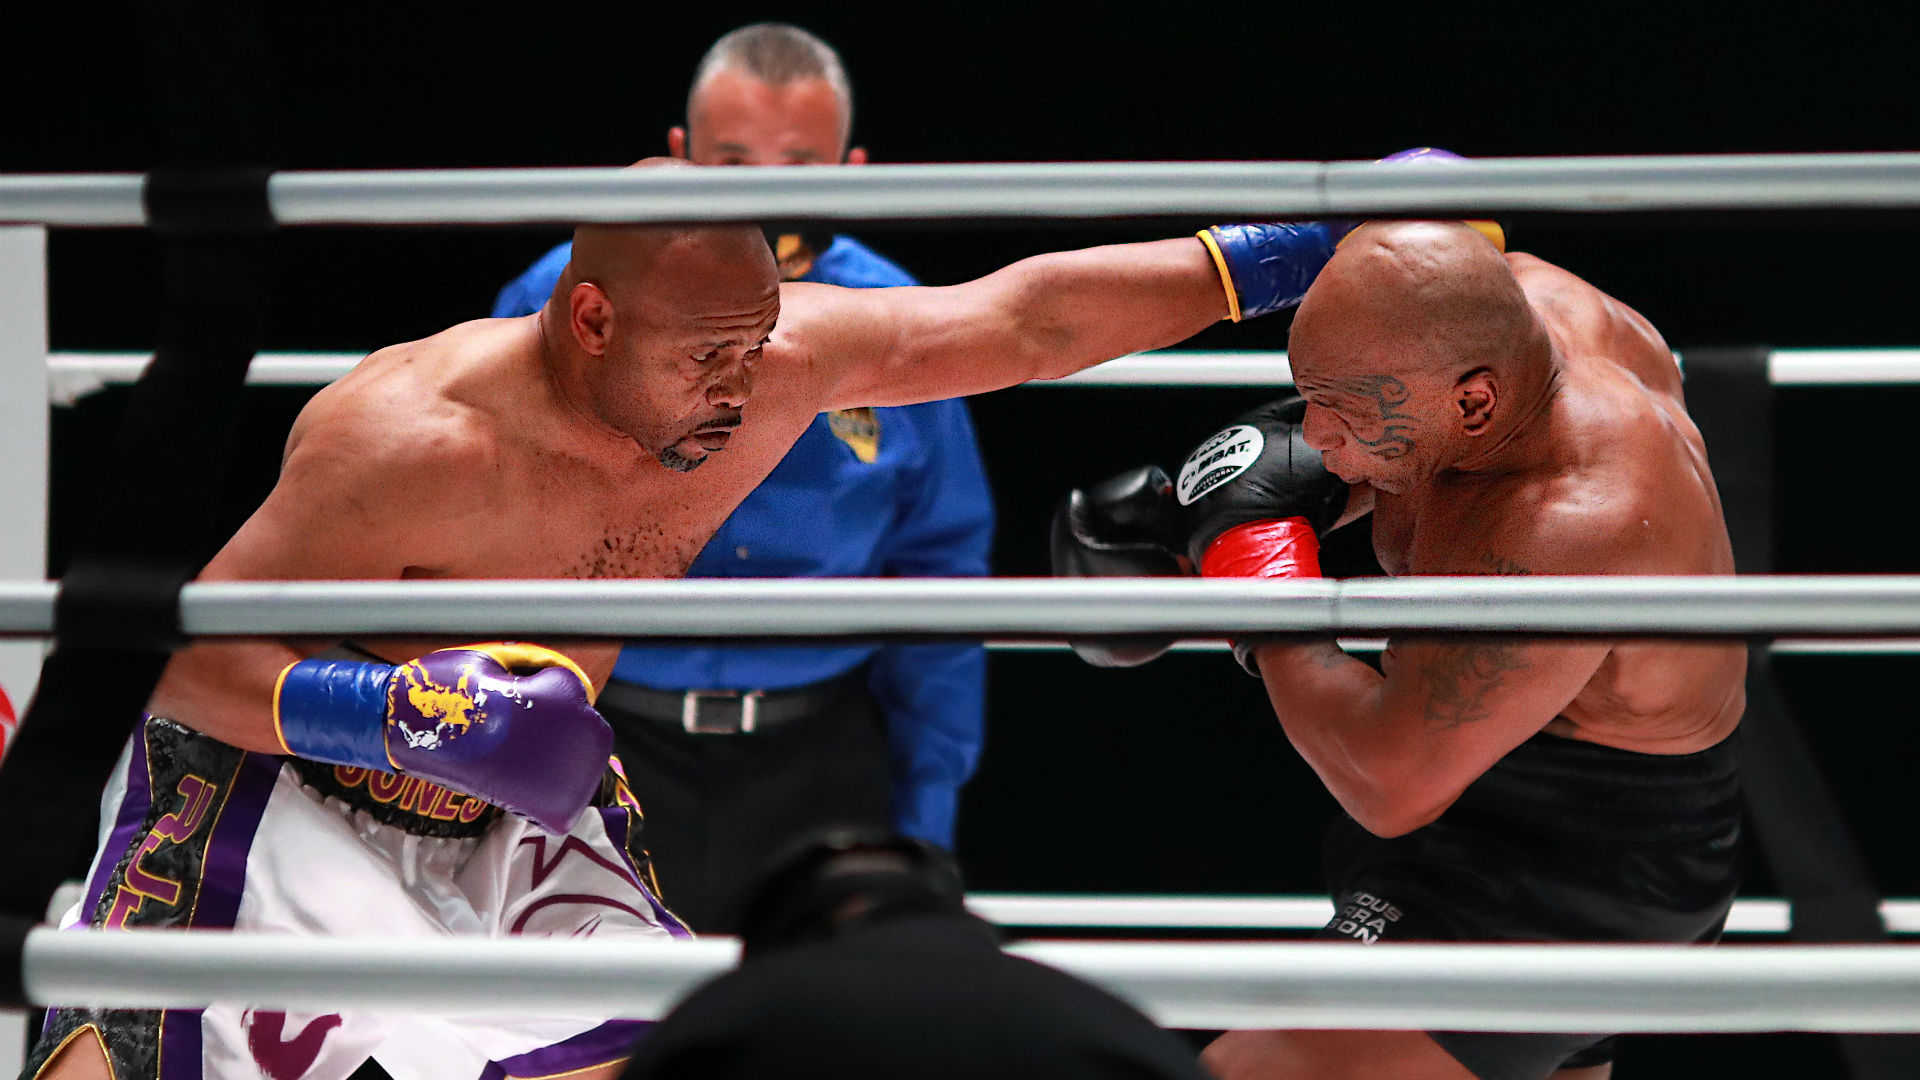 Mike Tyson vs. Roy Jones Jr. fight results: Boxing exhibition ends in unofficial draw